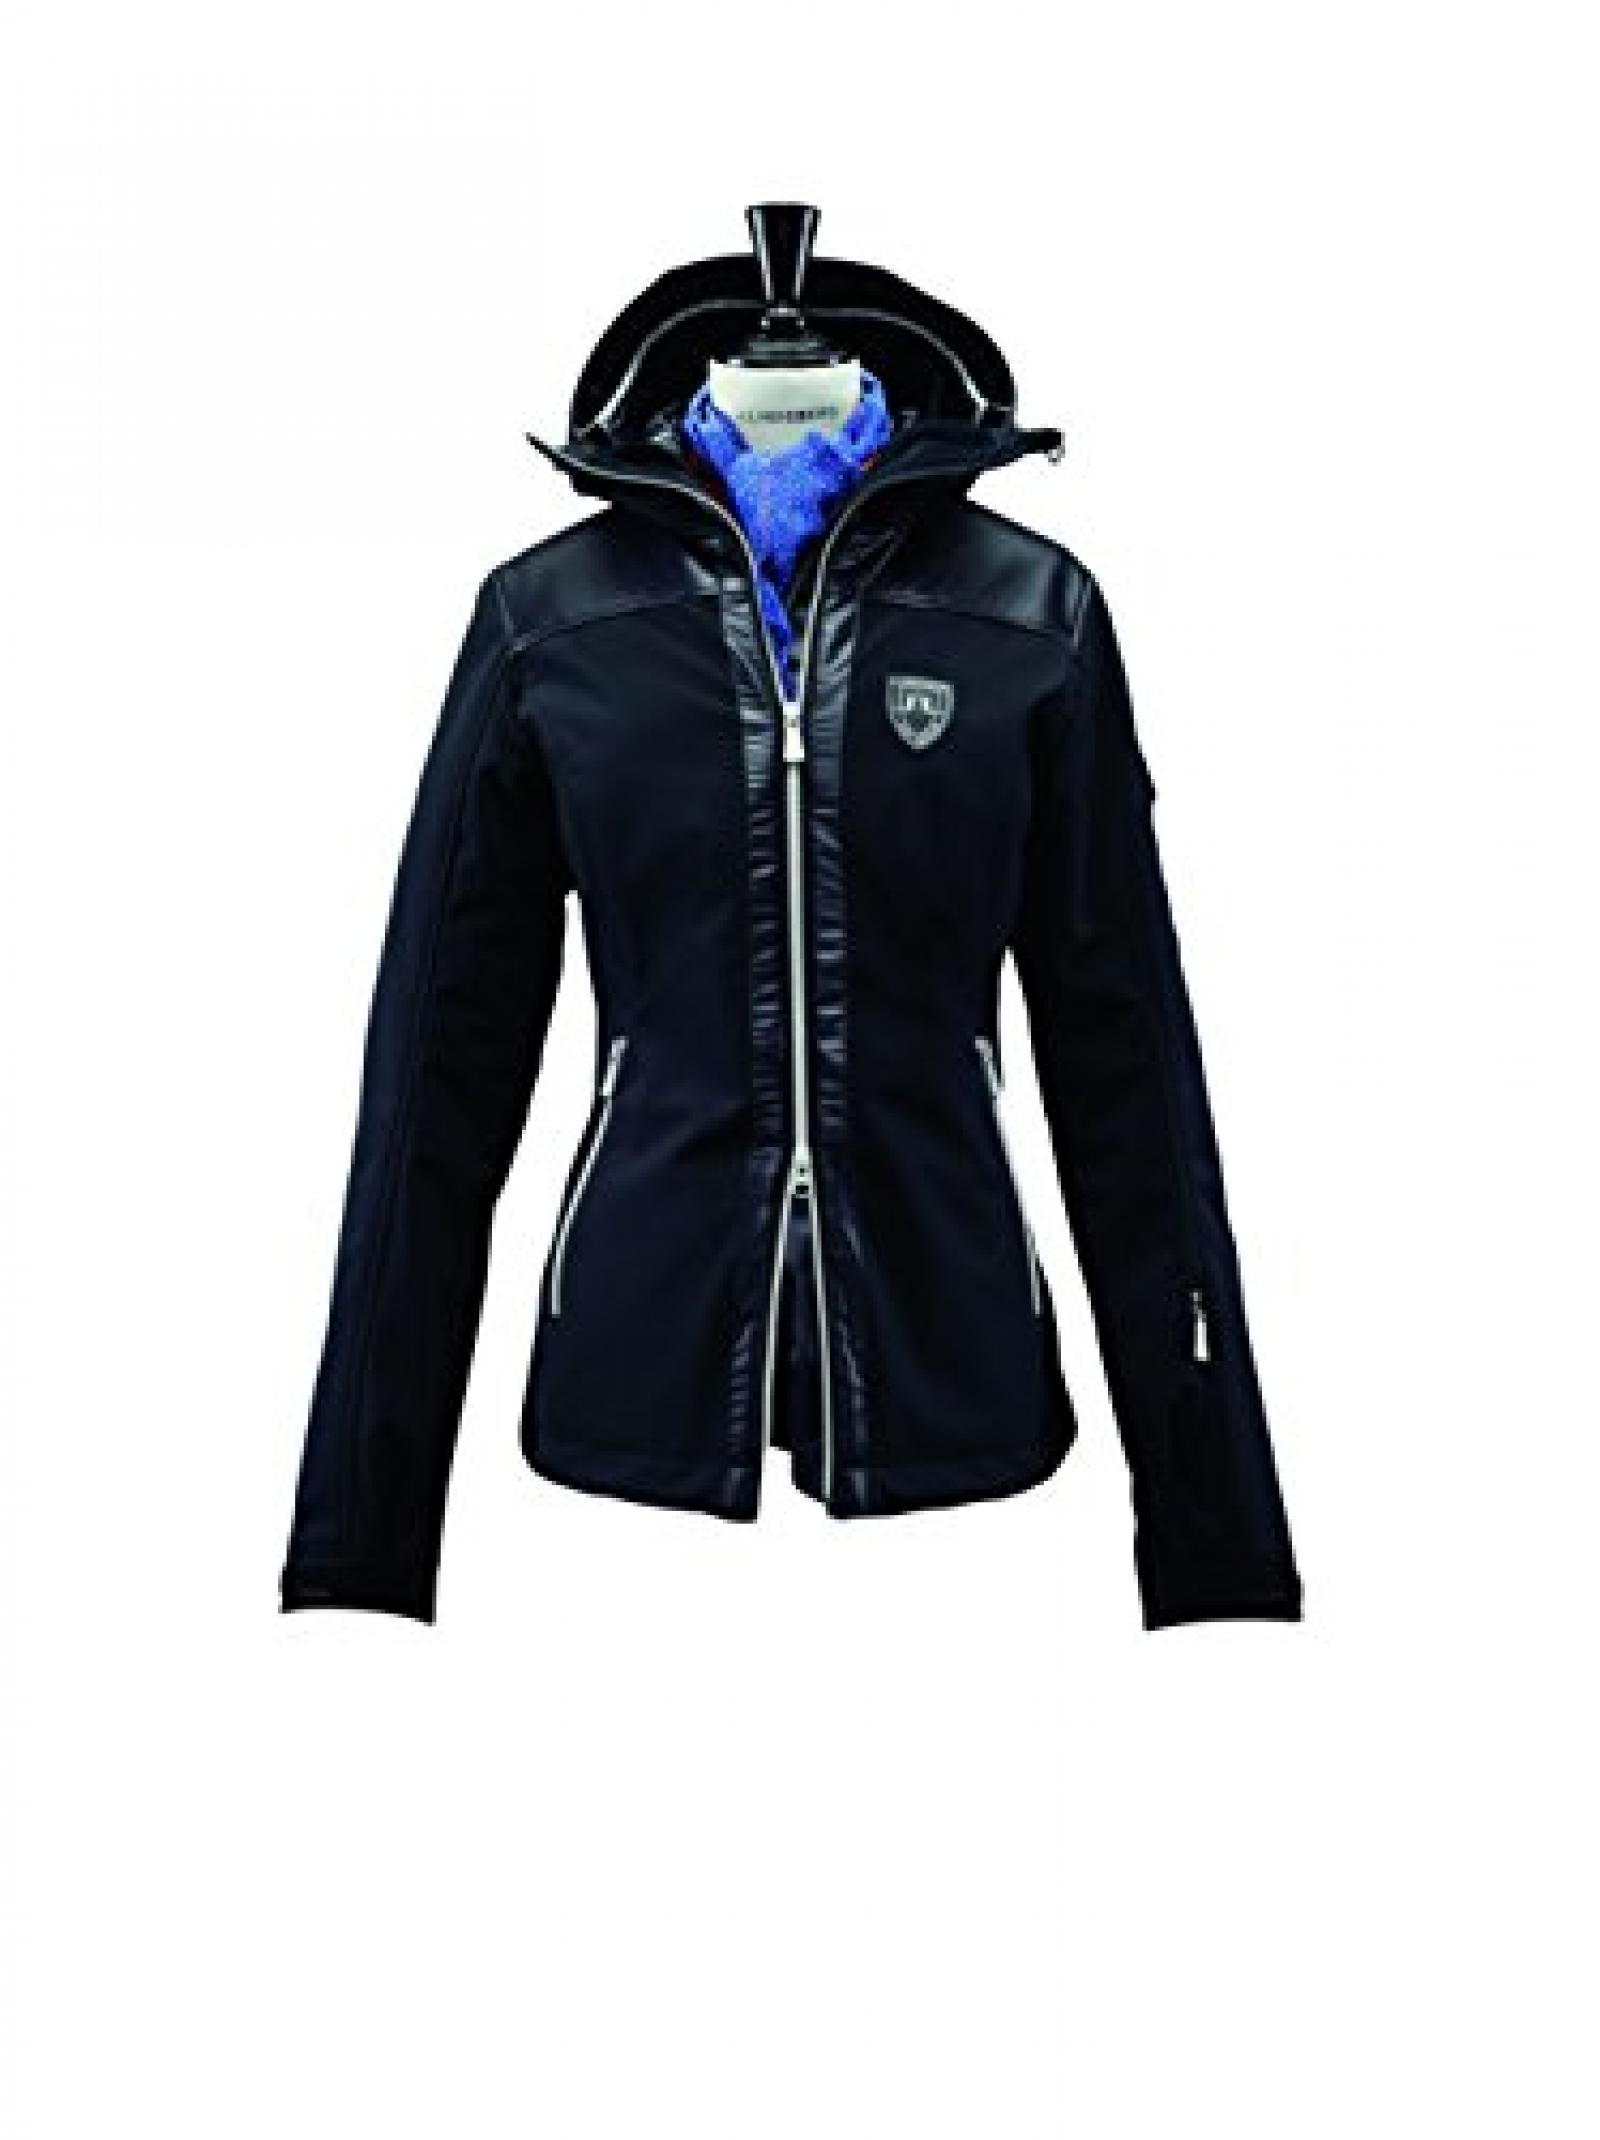 J. Lindeberg, Damen Jacke, Sanford Jacket Softshell - Black